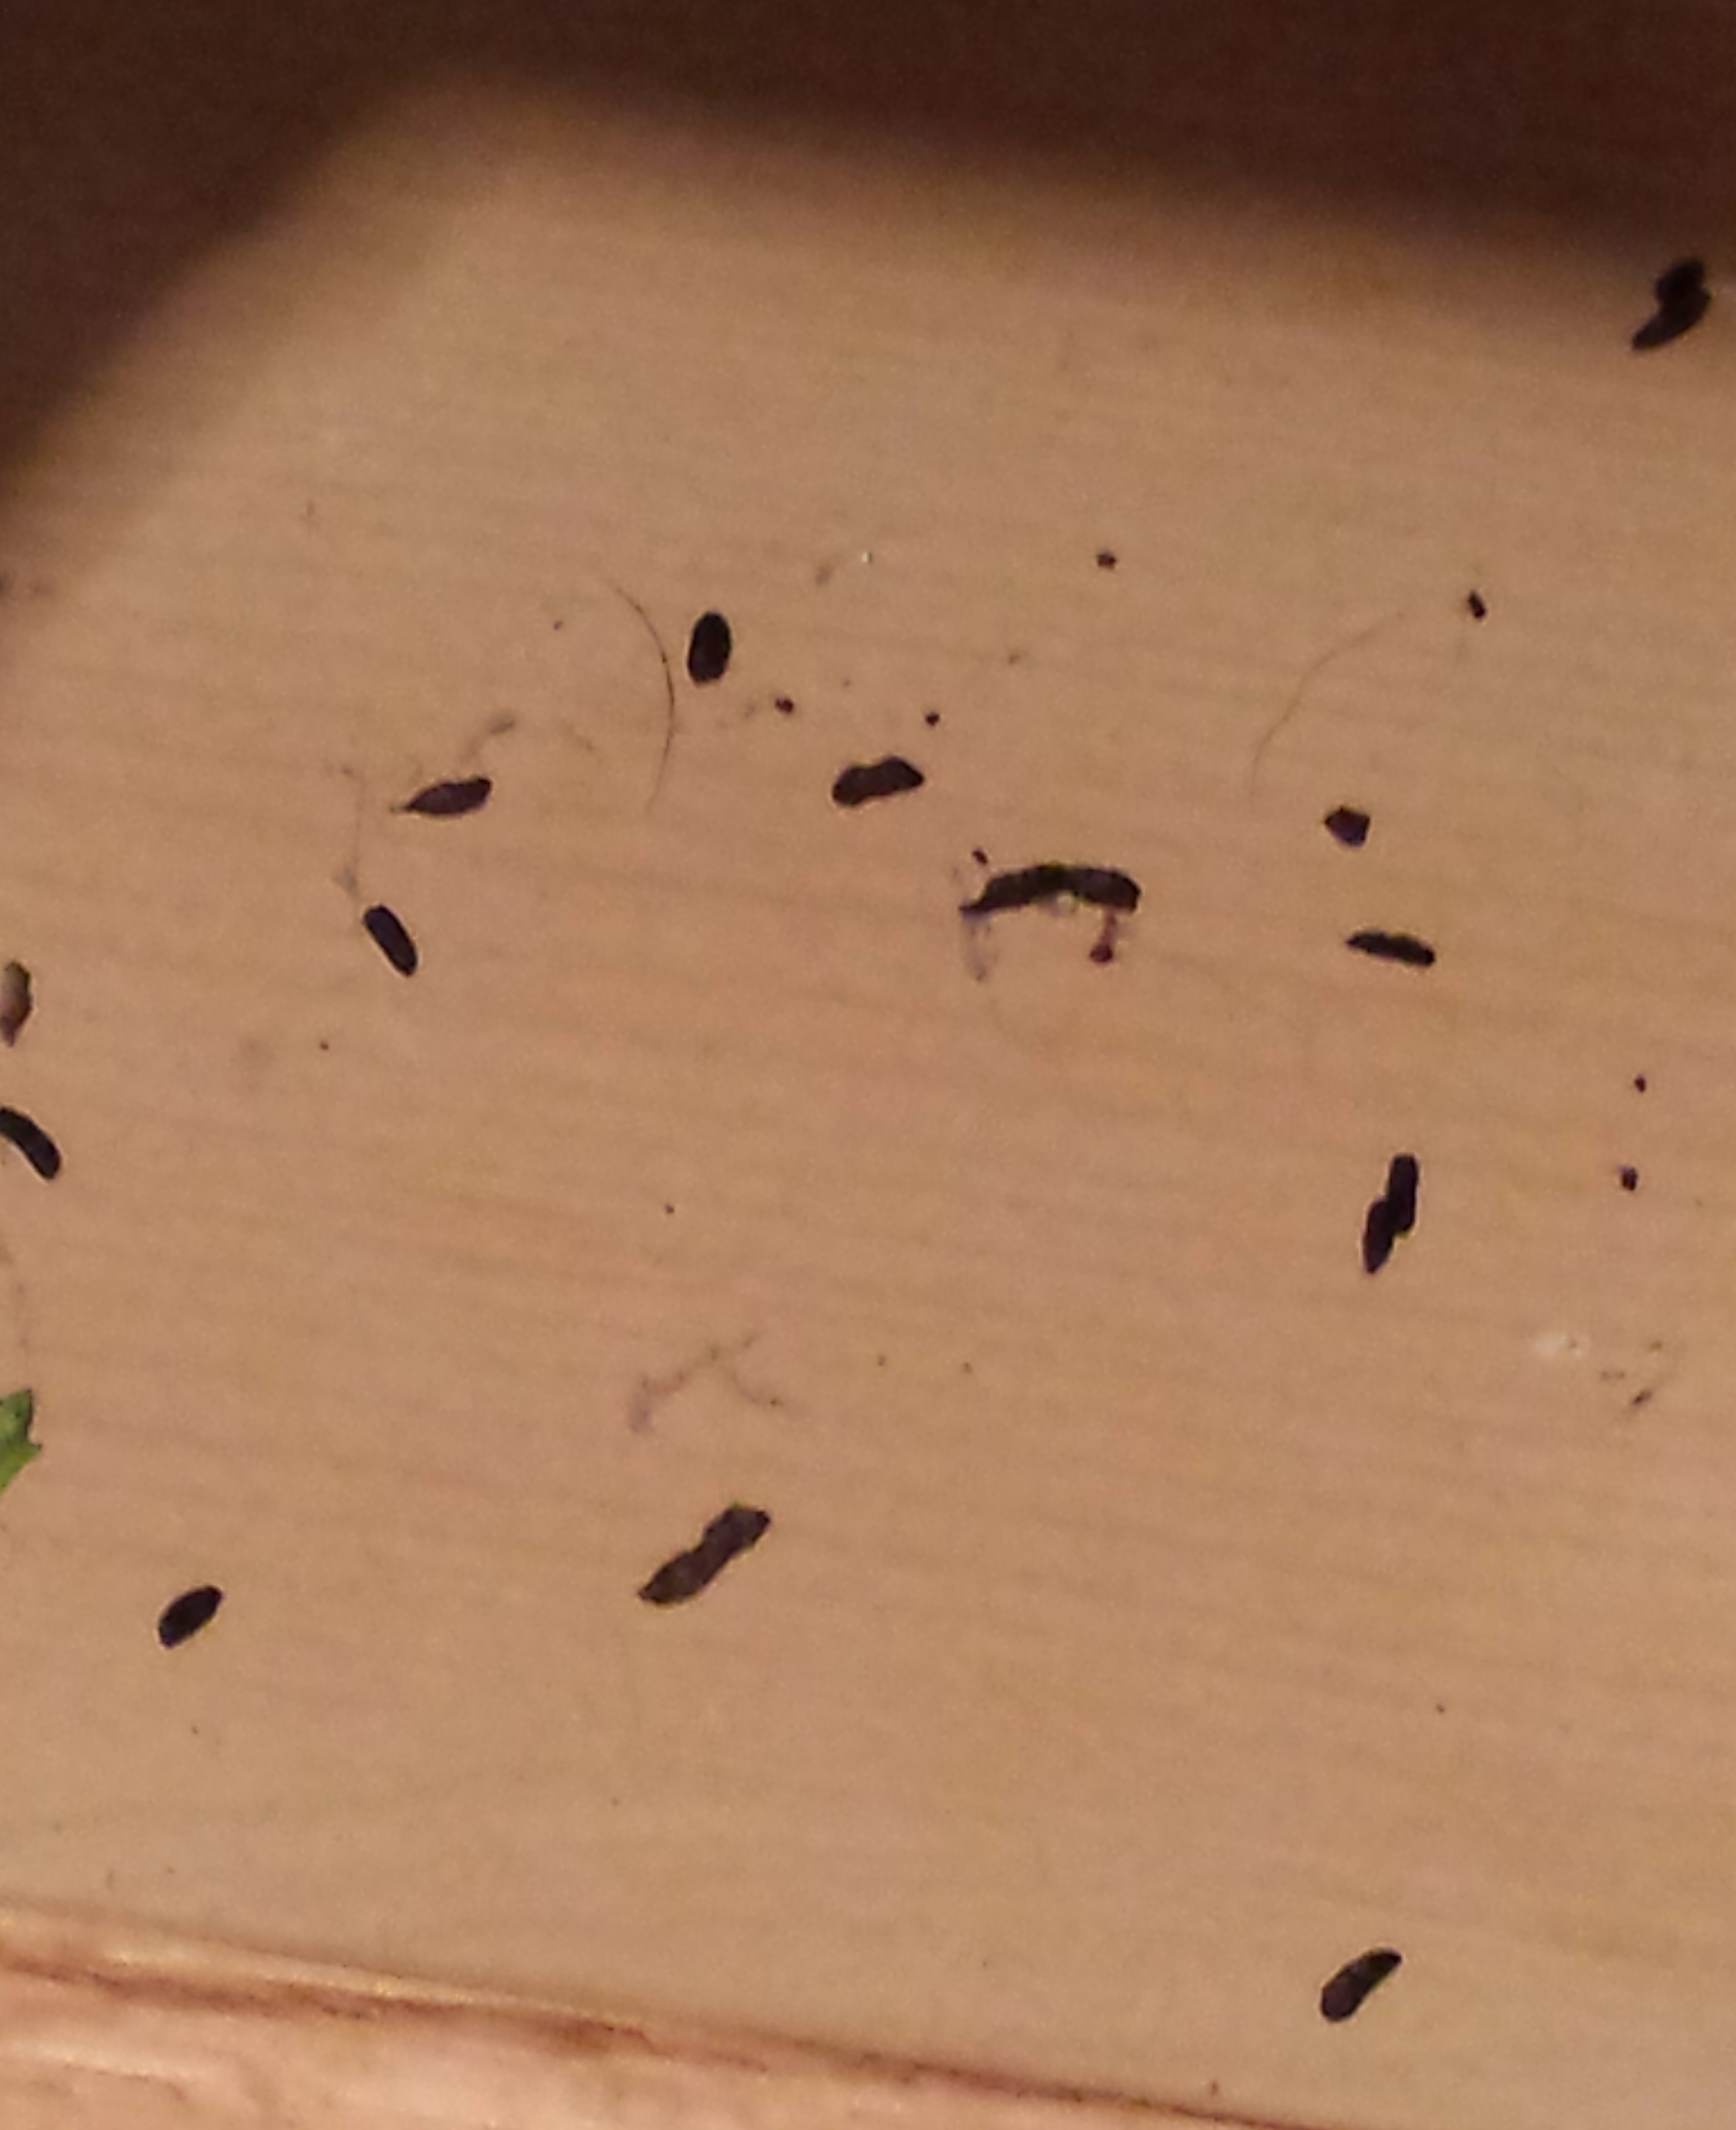 Mouse droppings look like